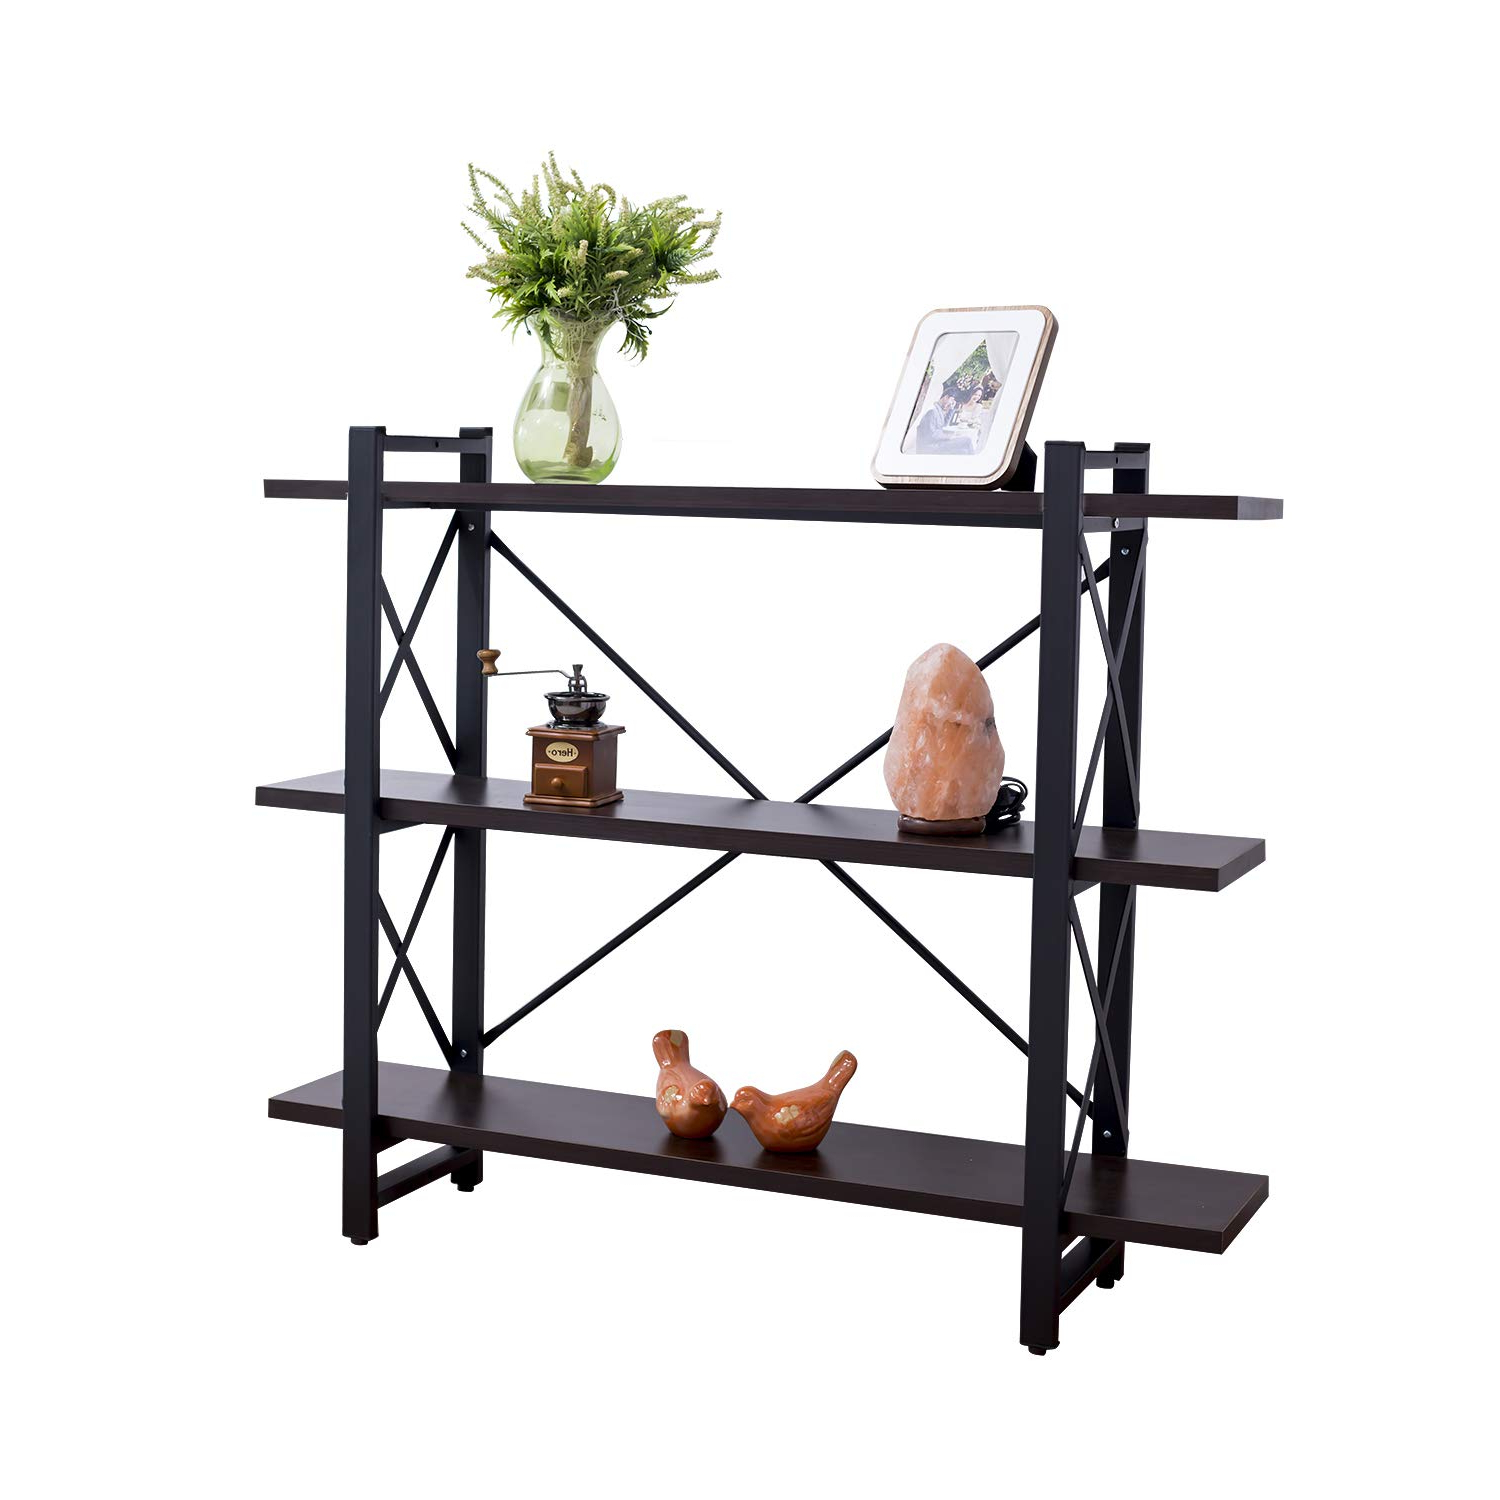 Widely Used Grace Tech 3 Tier Industrial Bookshelf Etagere Bookcase Wood And Metal Book  Shelves Furniture, Retro Rustic Home Office Storage Rack 3 Shelf Brown Within Rech 4 Tier Etagere Bookcases (View 20 of 20)